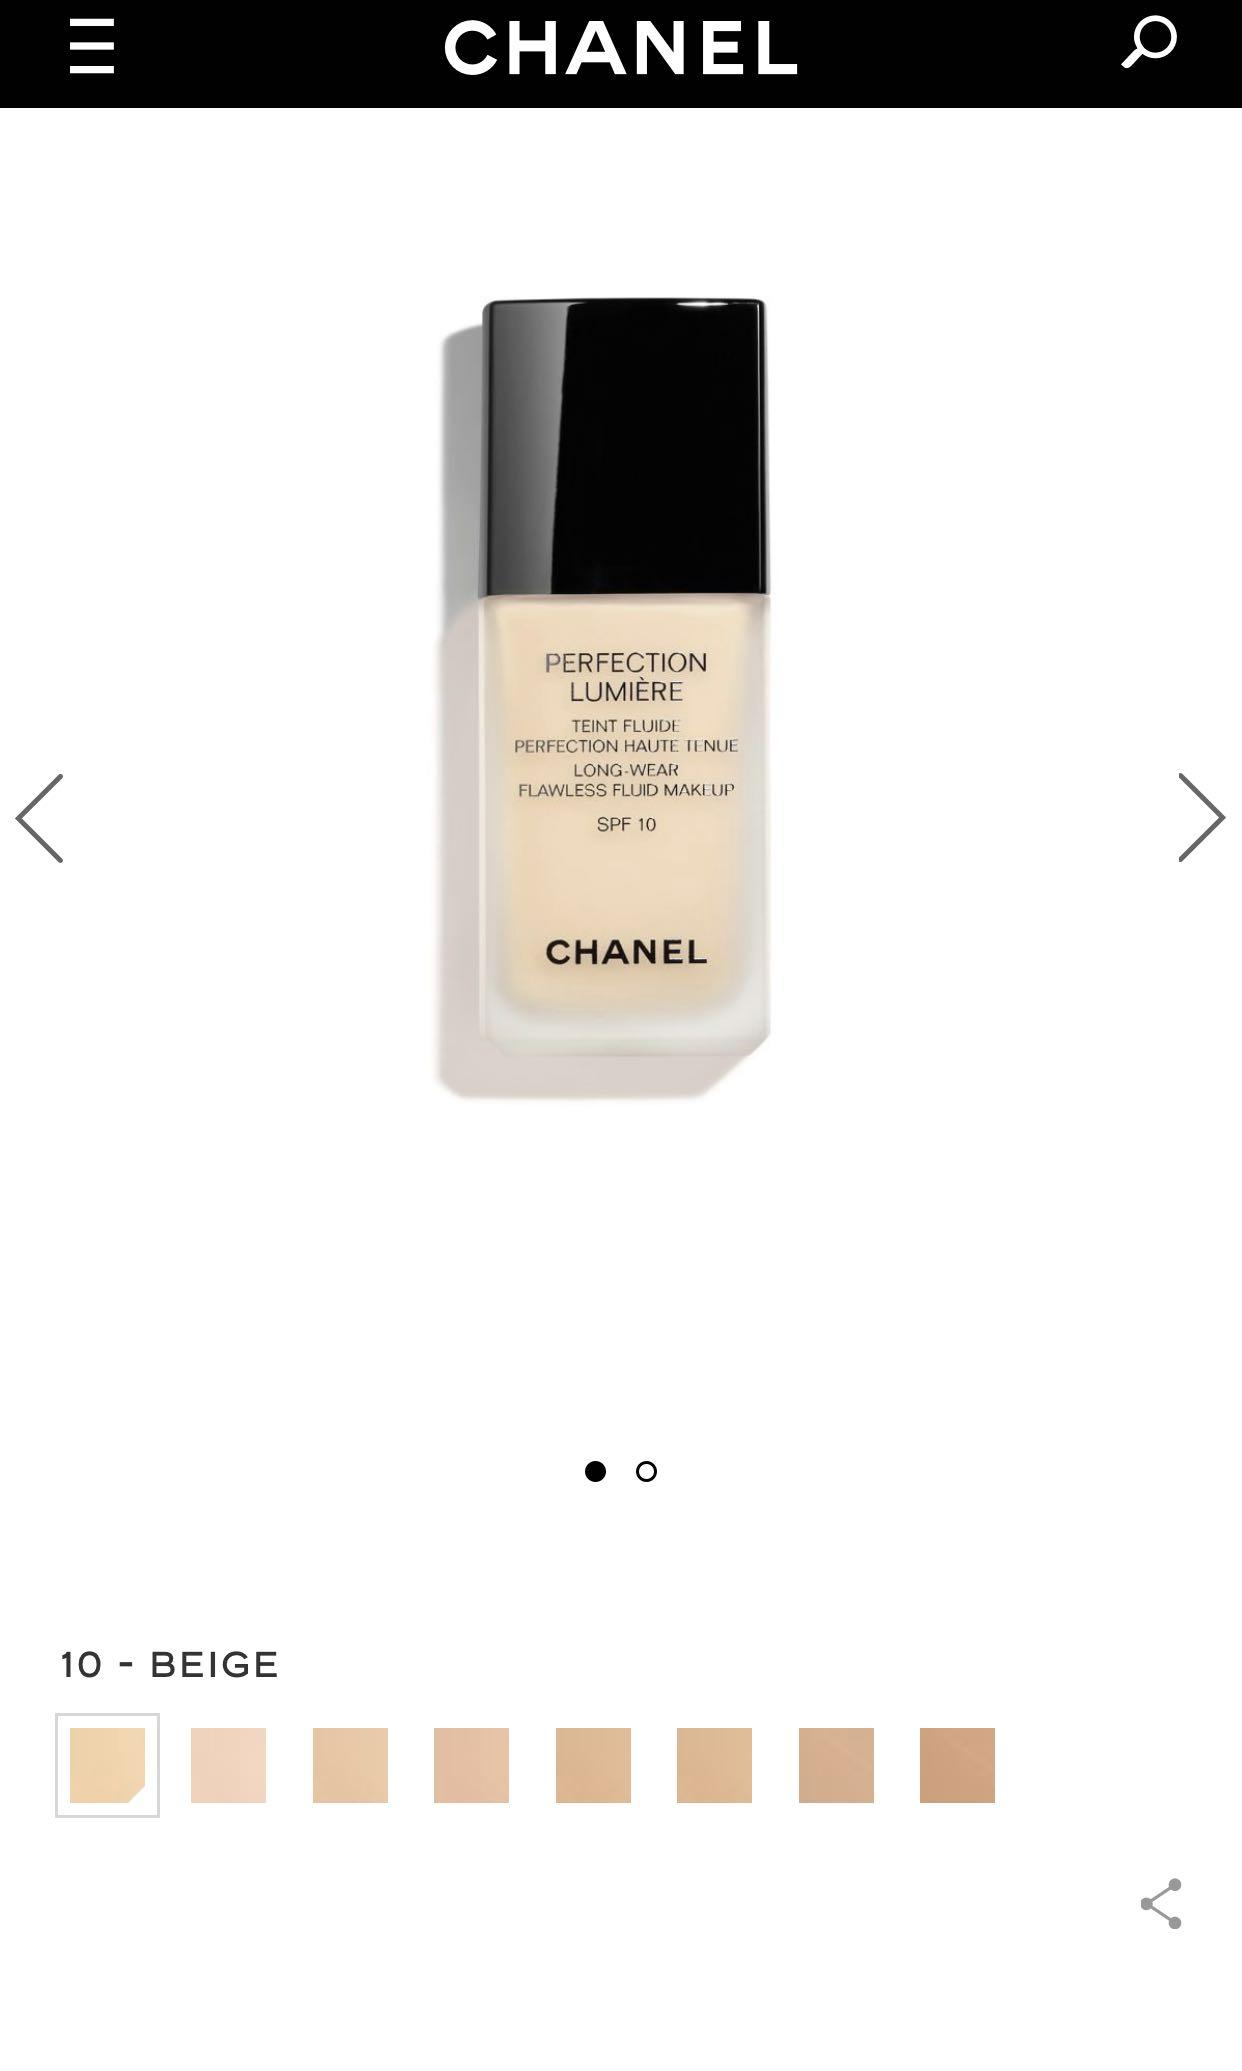 Chanel perfect lumiere